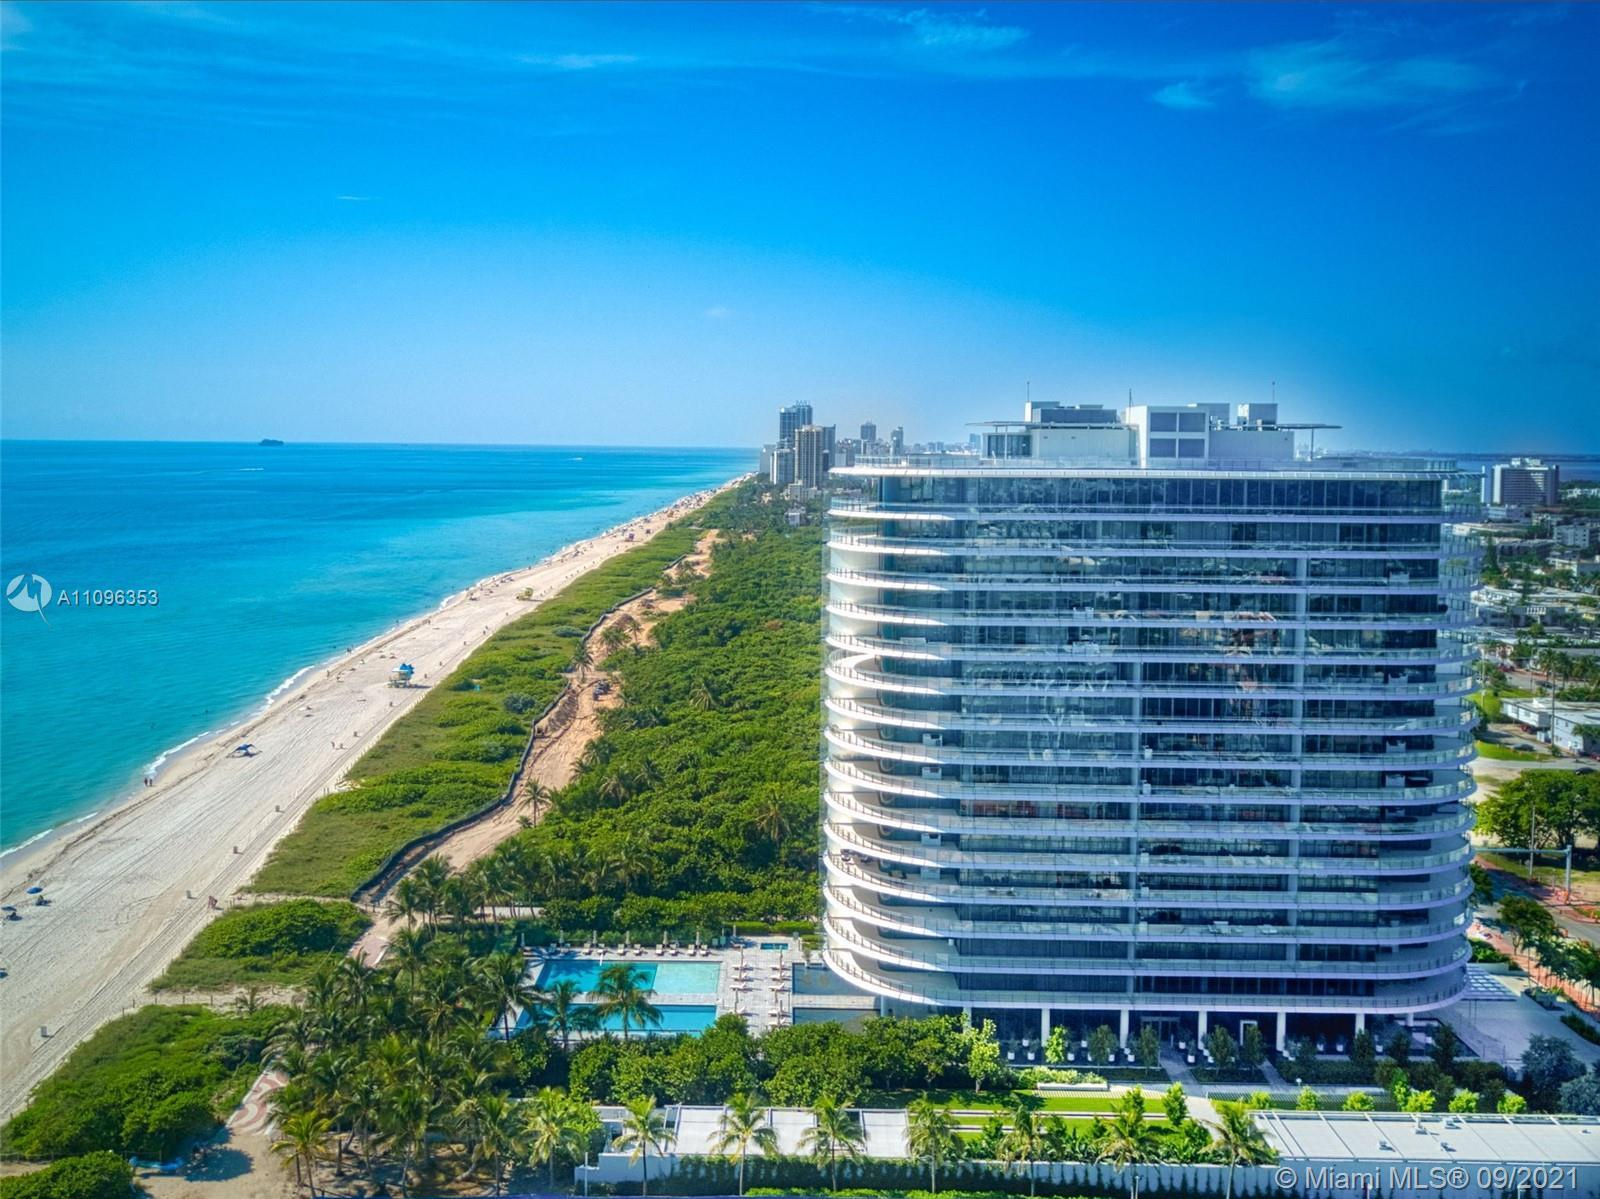 Dip your toes in the sand at 87 PARK, a boutique condo with just under 70 units and relaxing beachfr